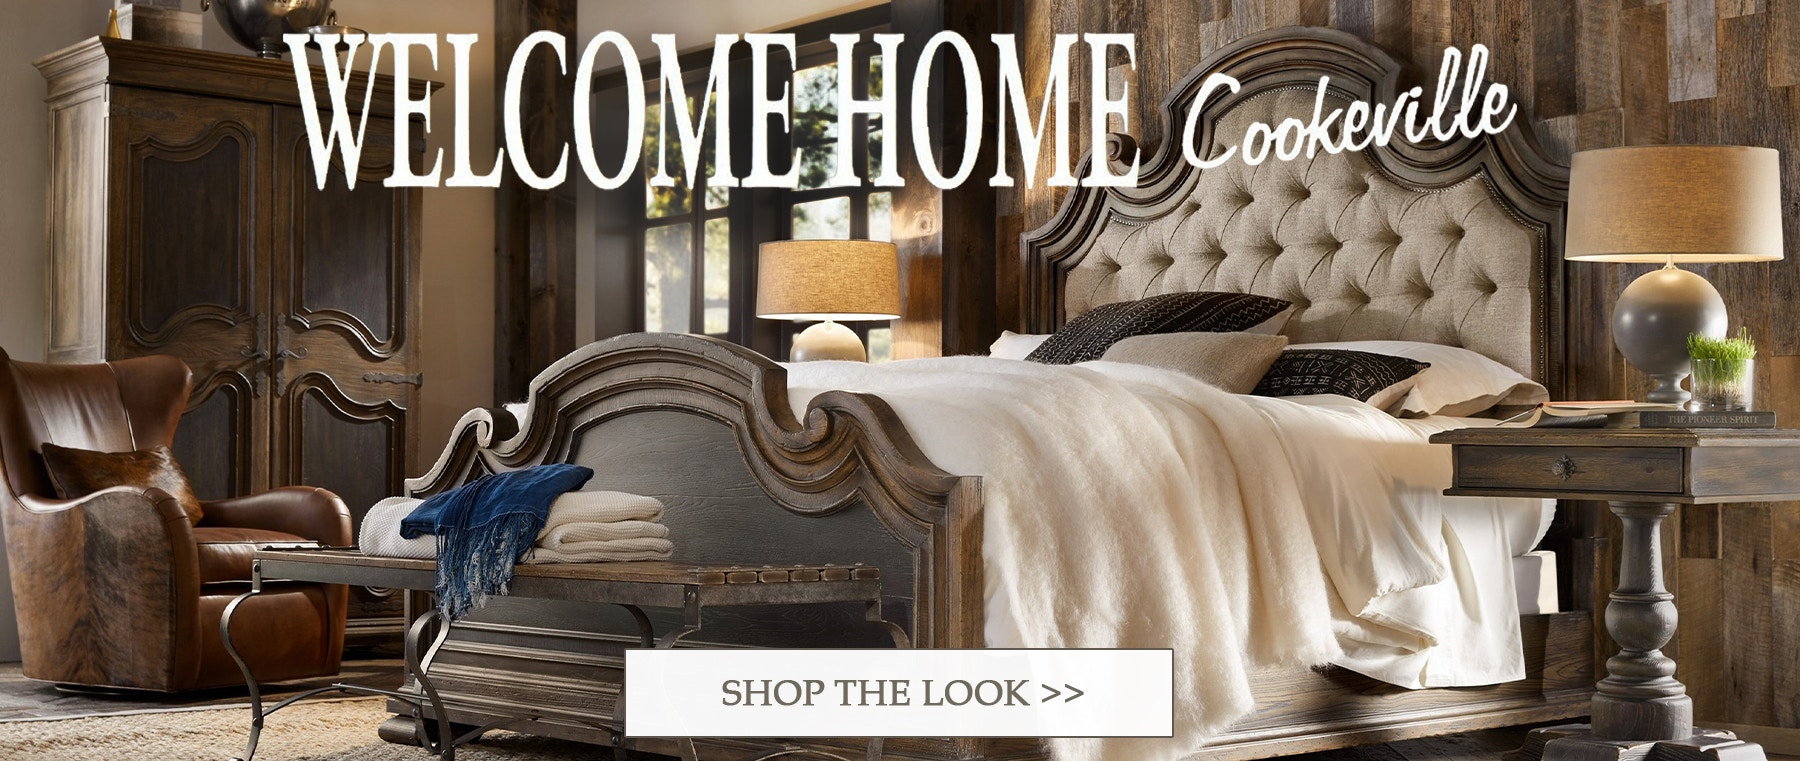 Furniture Store Cookeville TN | Wholesale Furniture